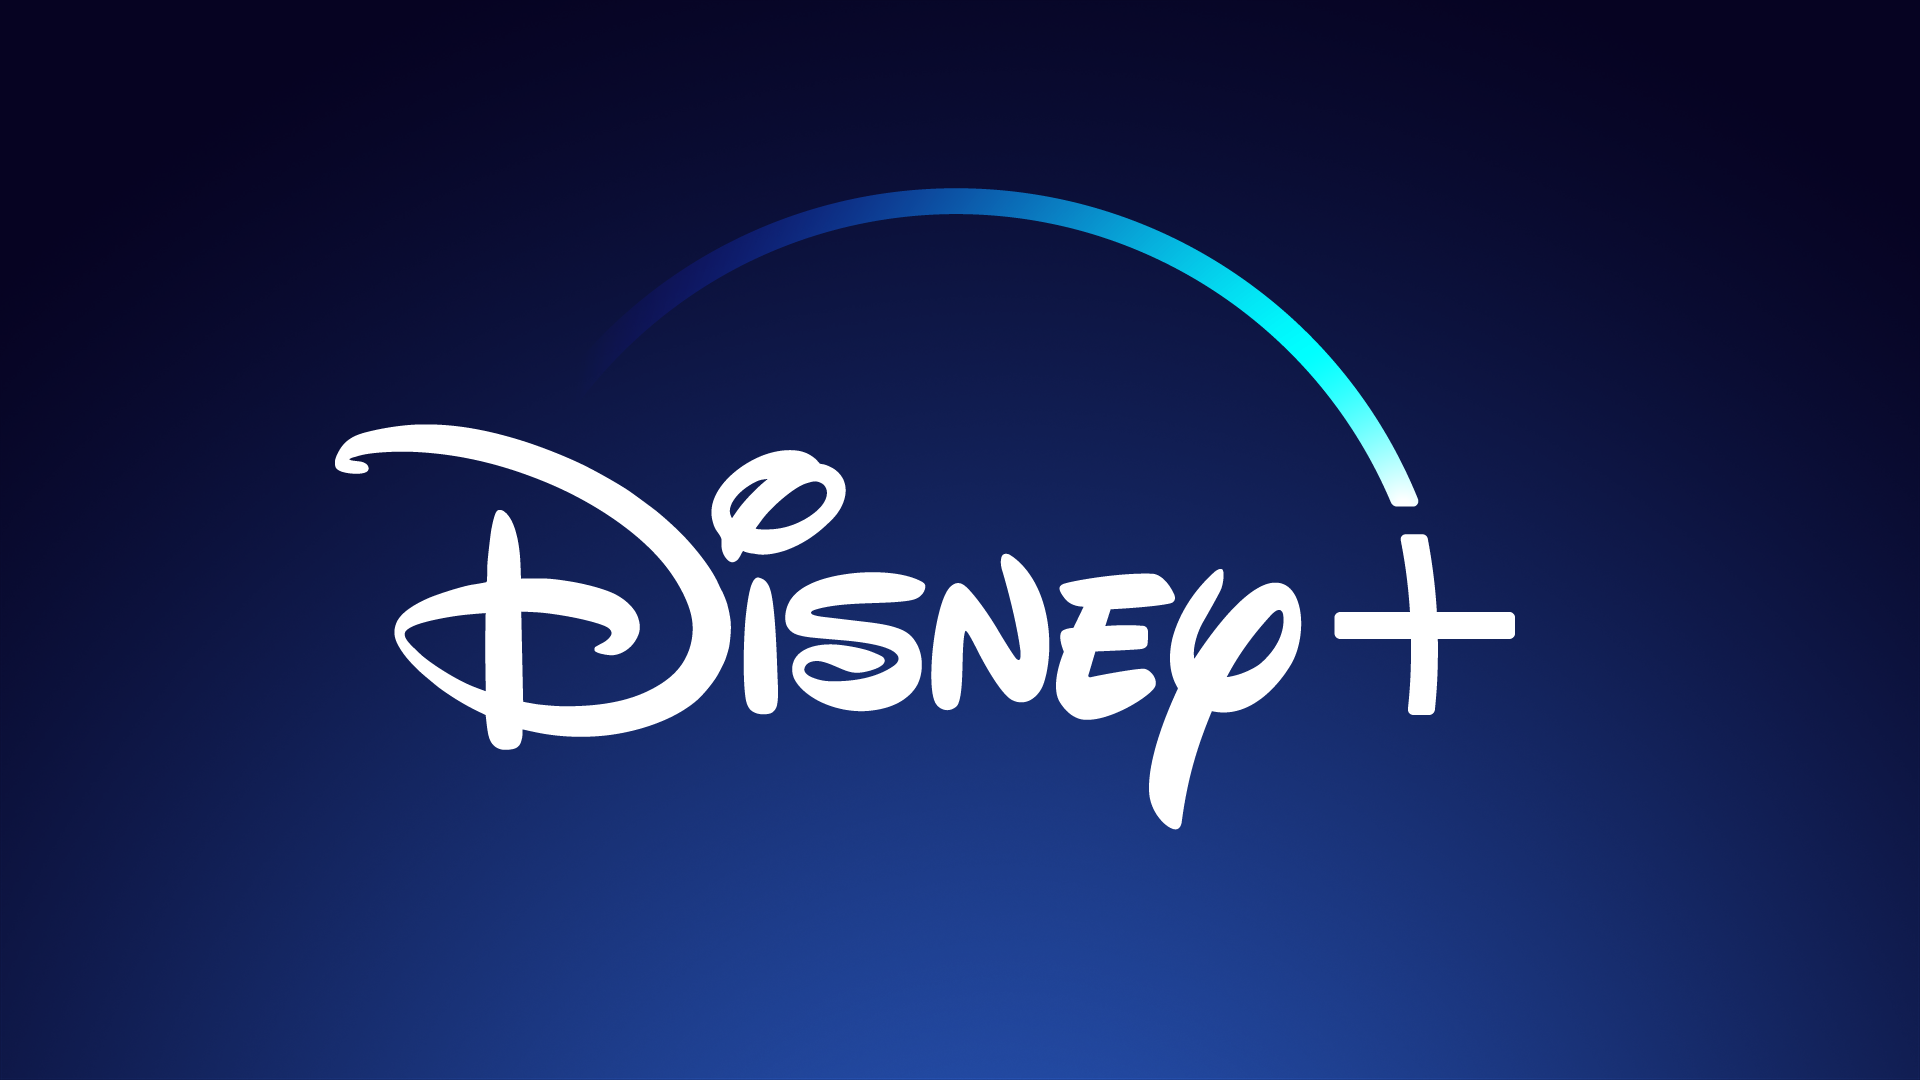 New Global Launch Dates Confirmed for Disney+ - The Walt Disney Company